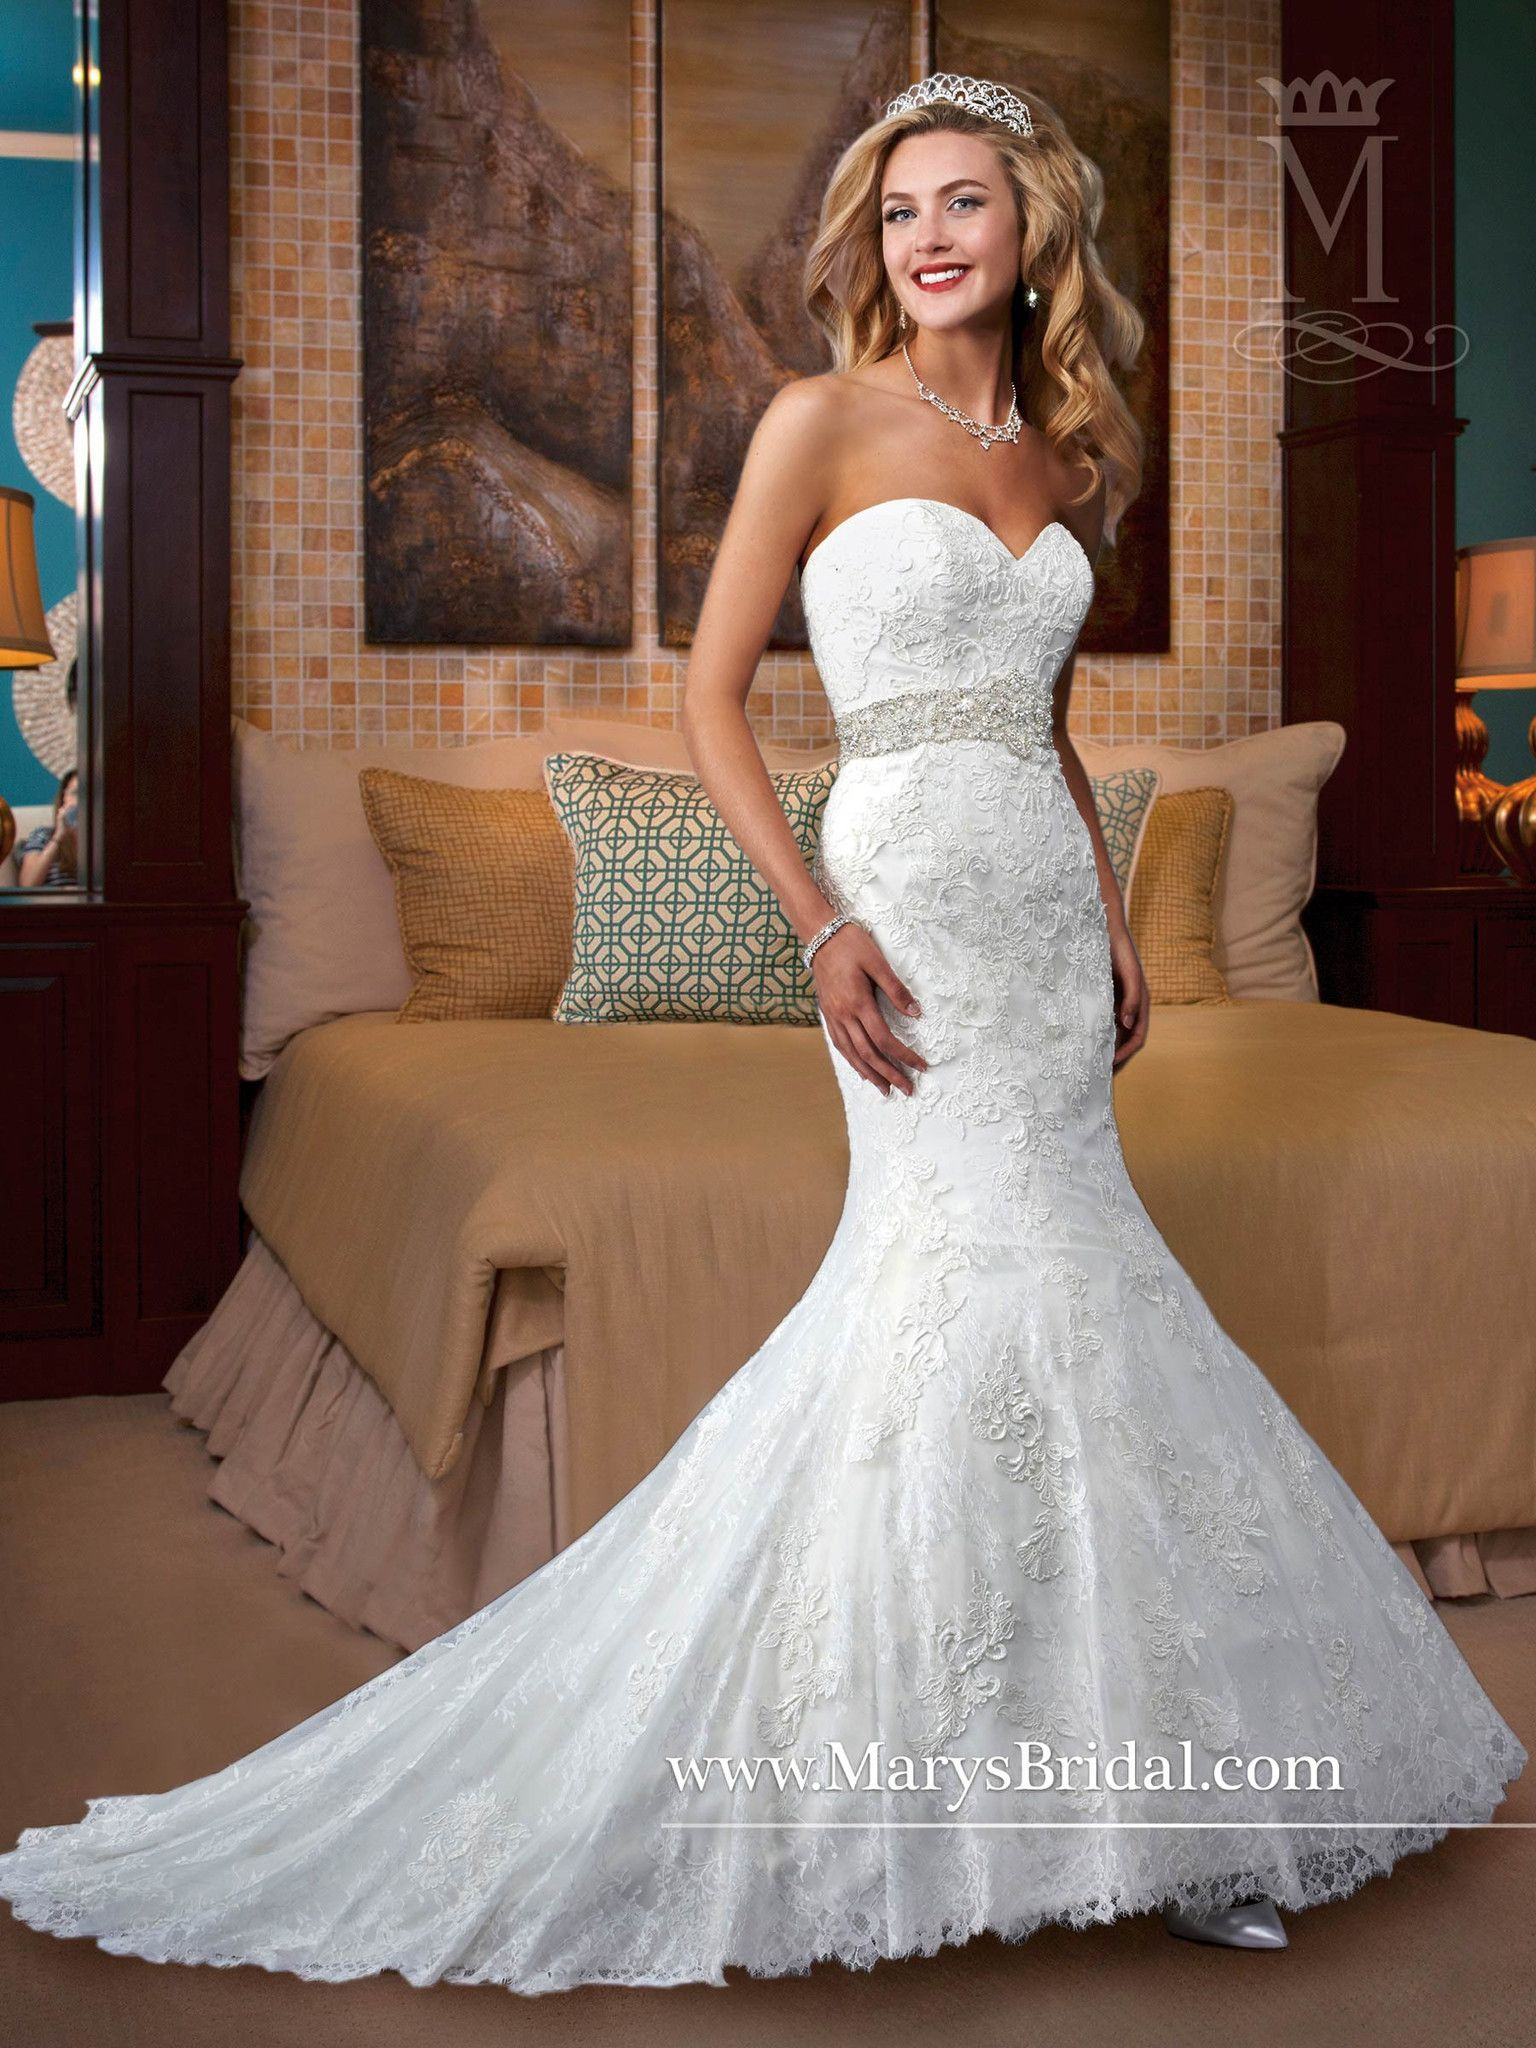 Venice lace over allover french lace gown wedding dress